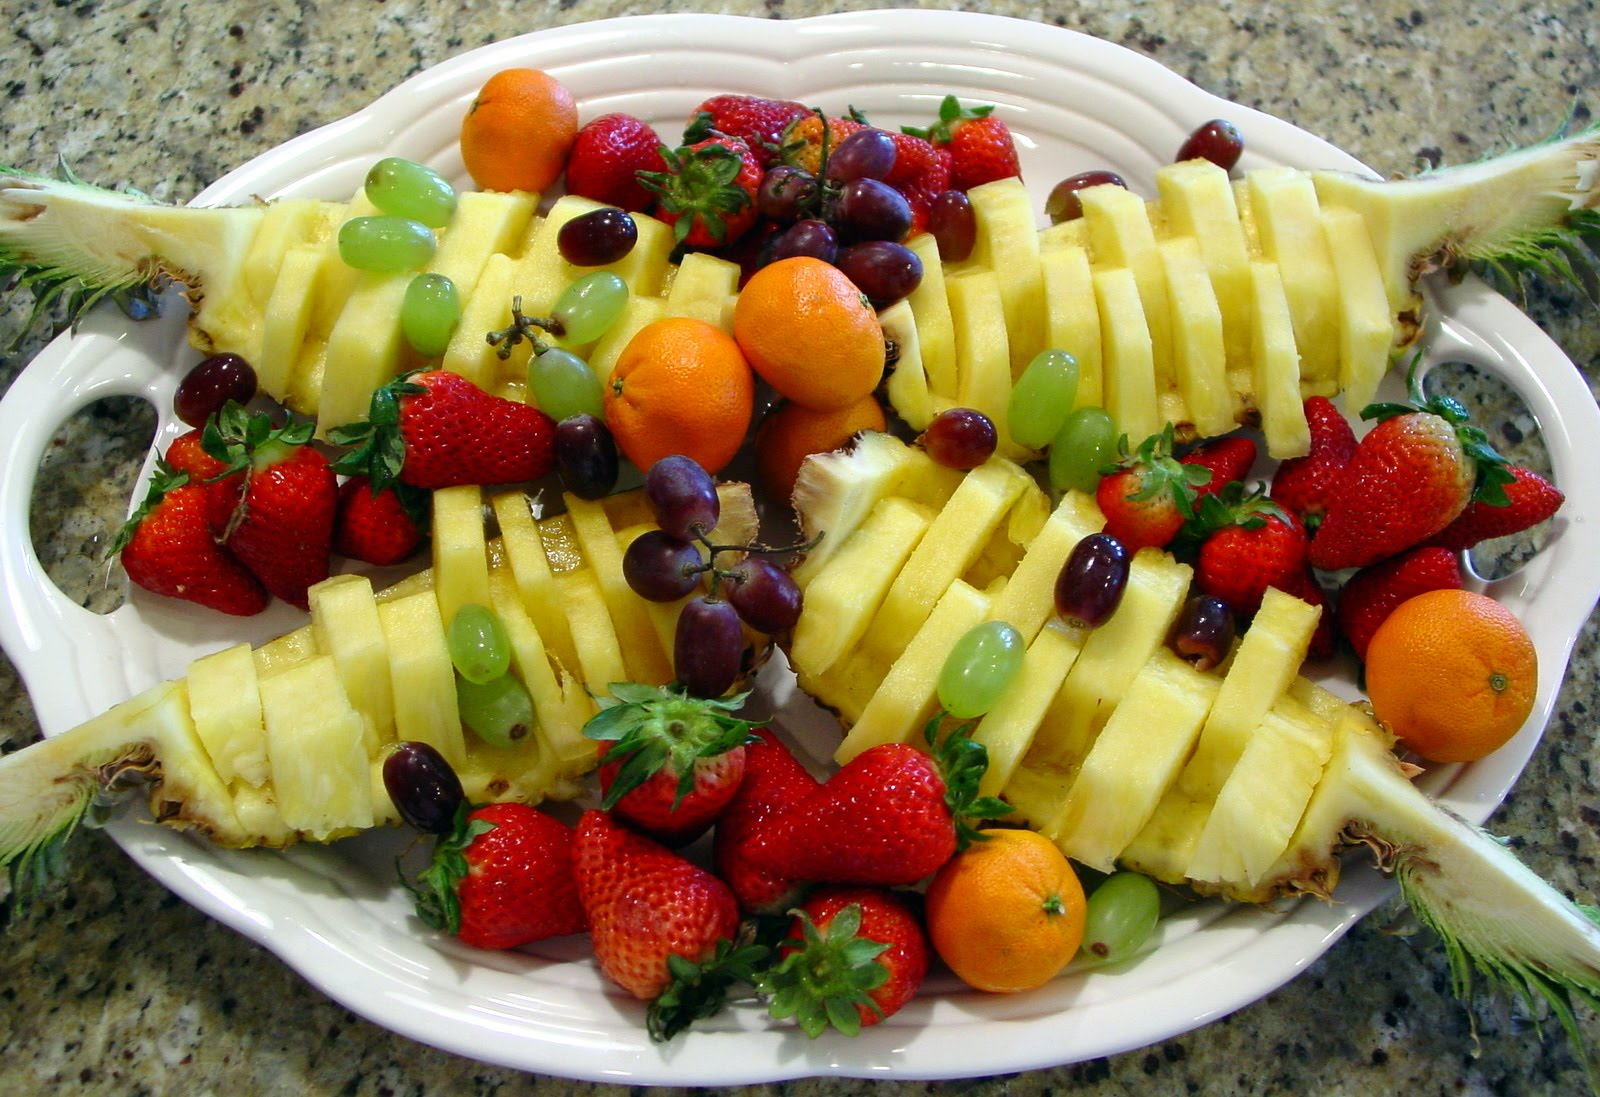 Fruit designs for parties related keywords suggestions - Fruit designs for parties ...